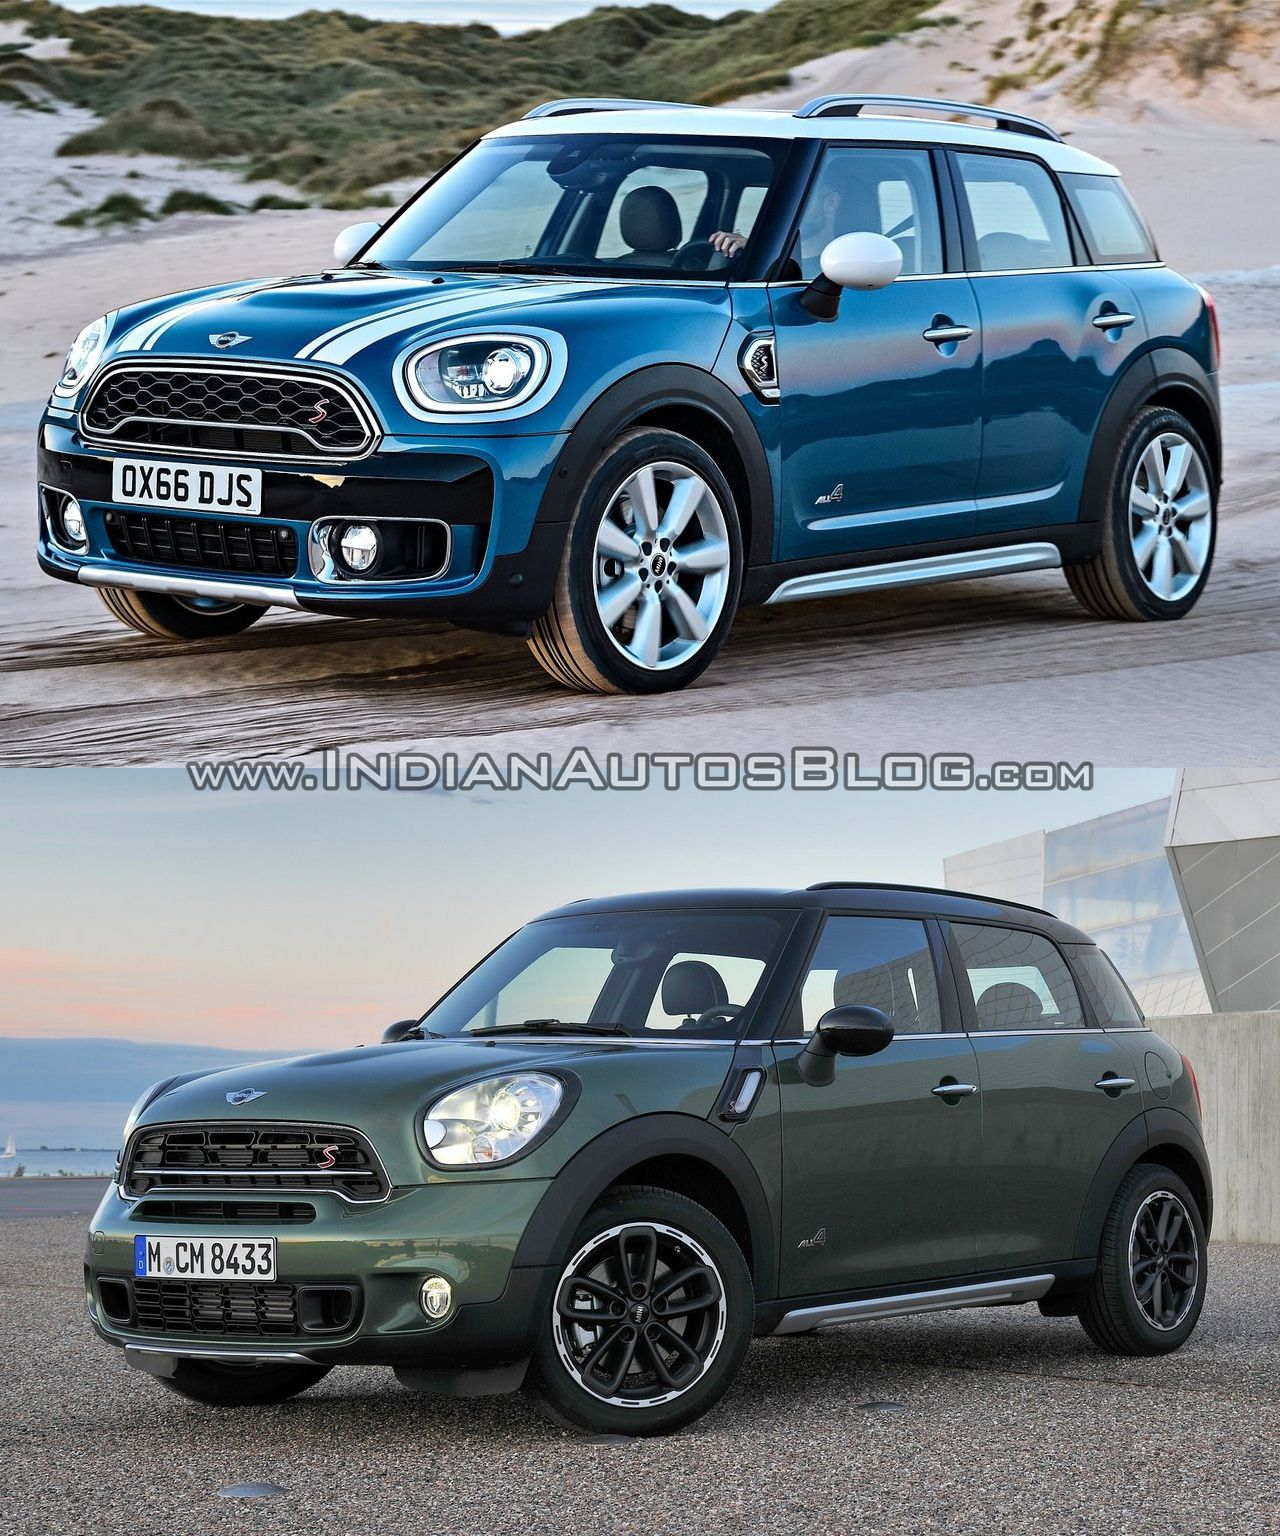 2017 mini countryman vs 2014 mini countryman old vs new cars daily updated pinterest. Black Bedroom Furniture Sets. Home Design Ideas